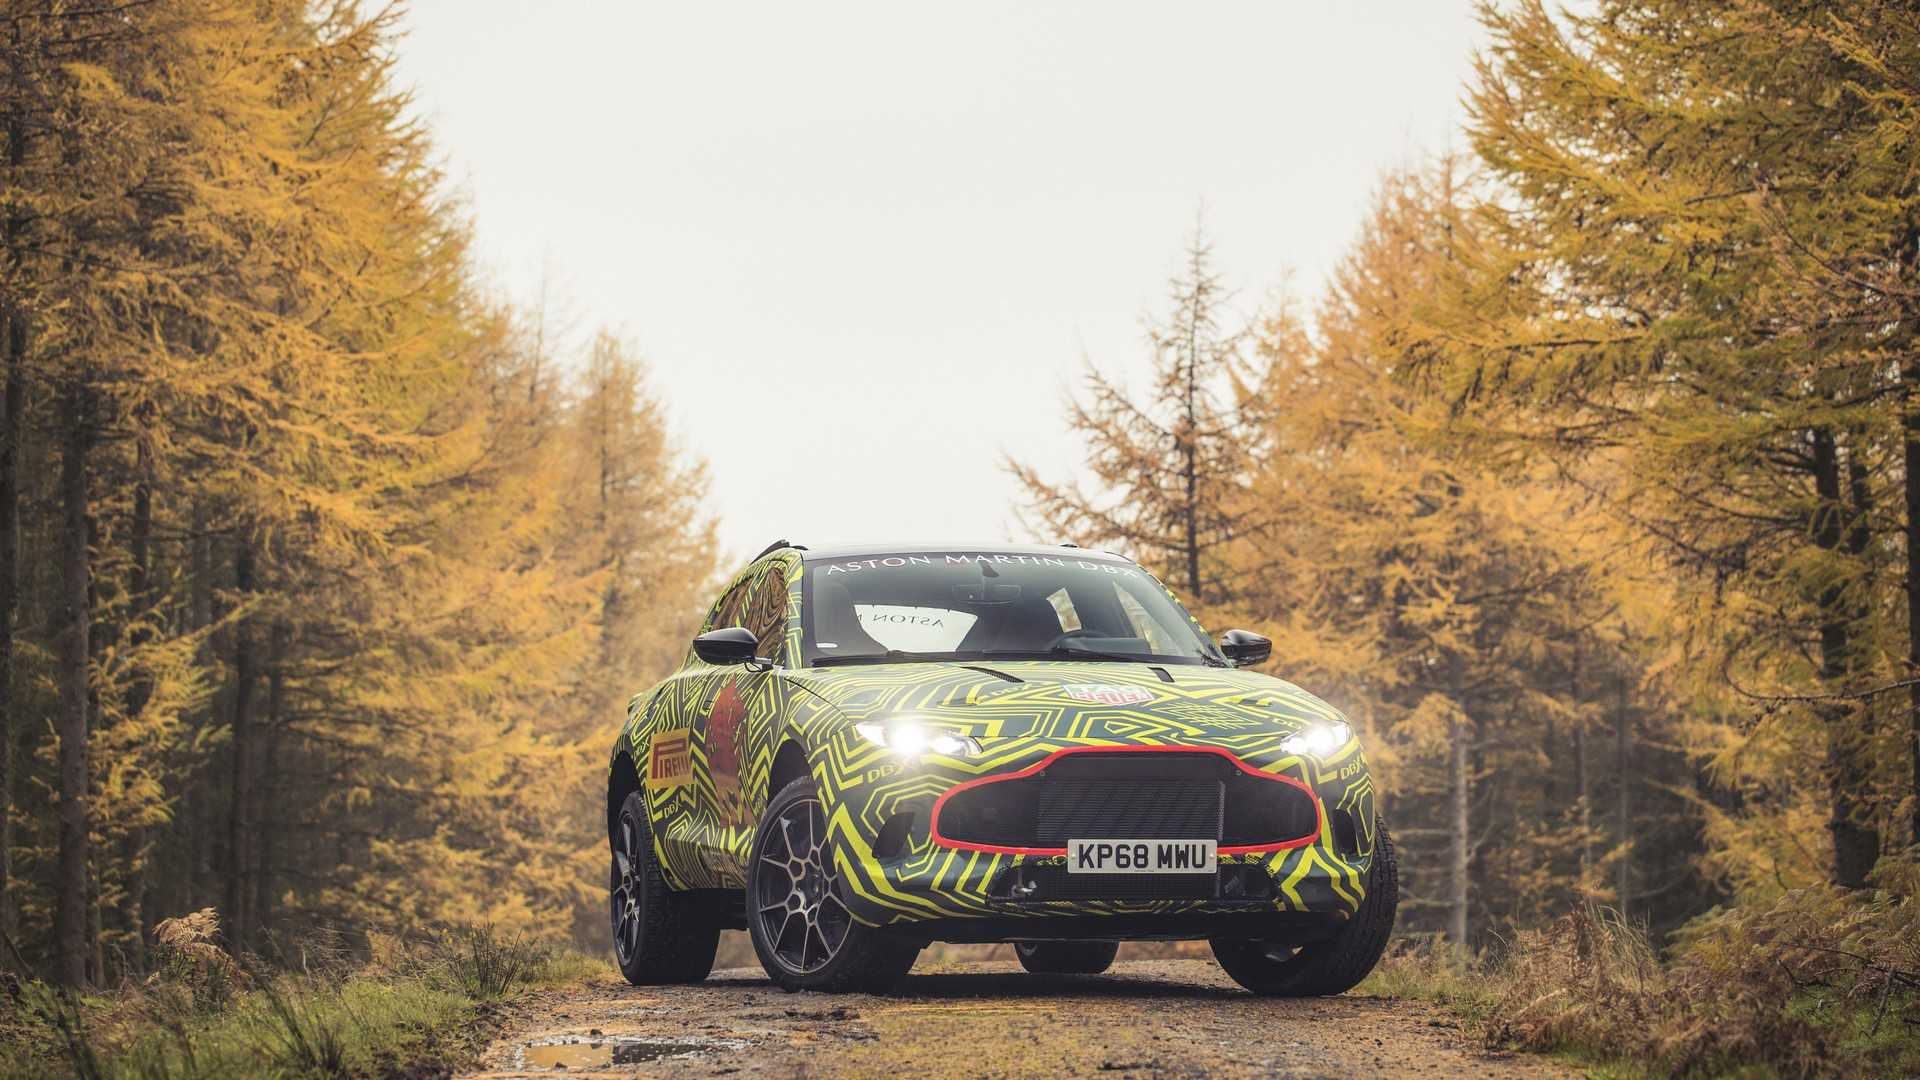 FIRST LOOK: Here's Aston Martin's new DBX SUV that will take on Bentley and Lamborghini